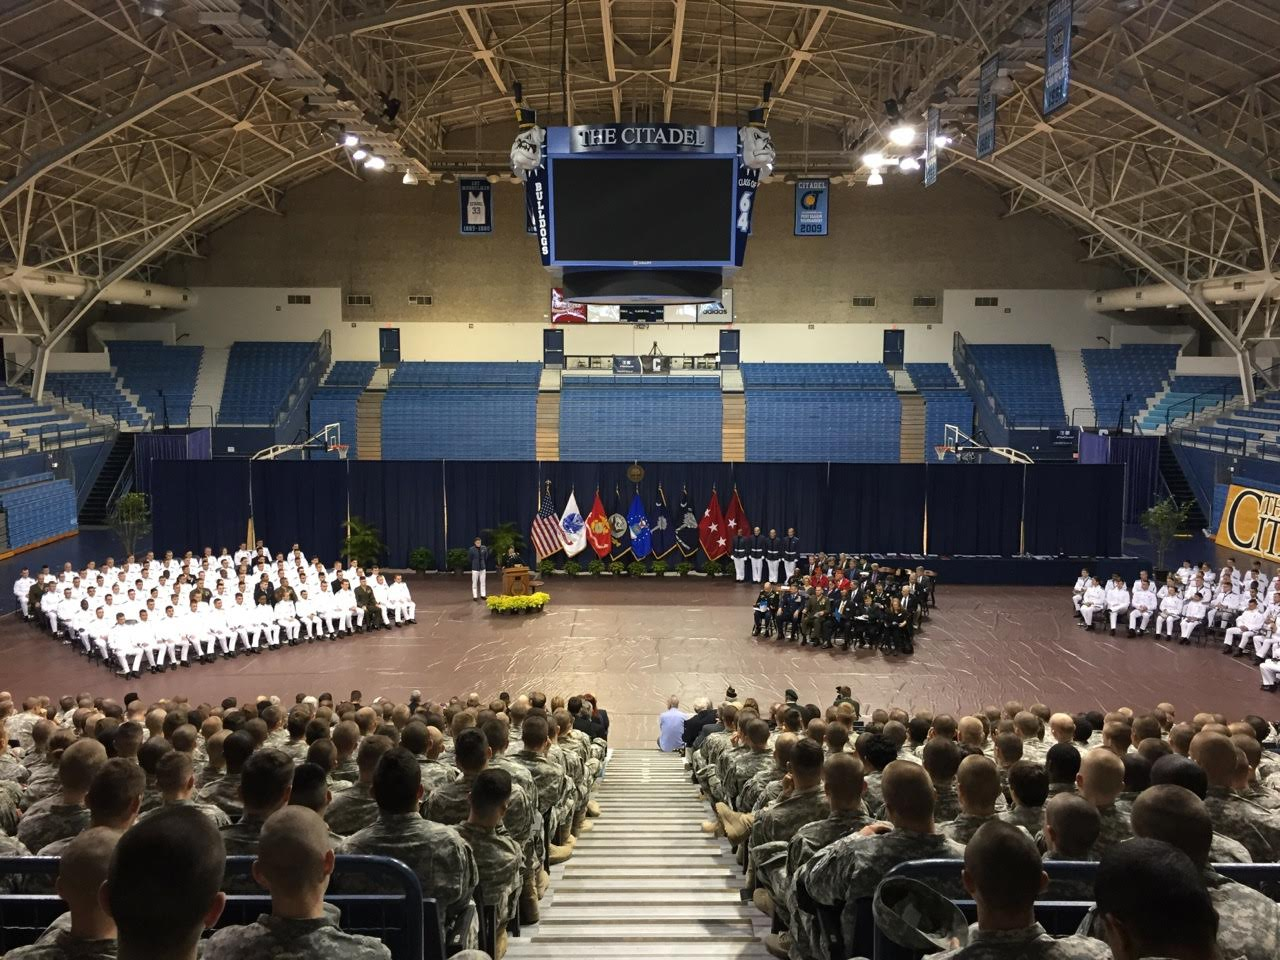 STONY POINT WOMAN RECOGNIZED FOR PARTICIPATION IN CITADEL'S ROTC PROGRAM